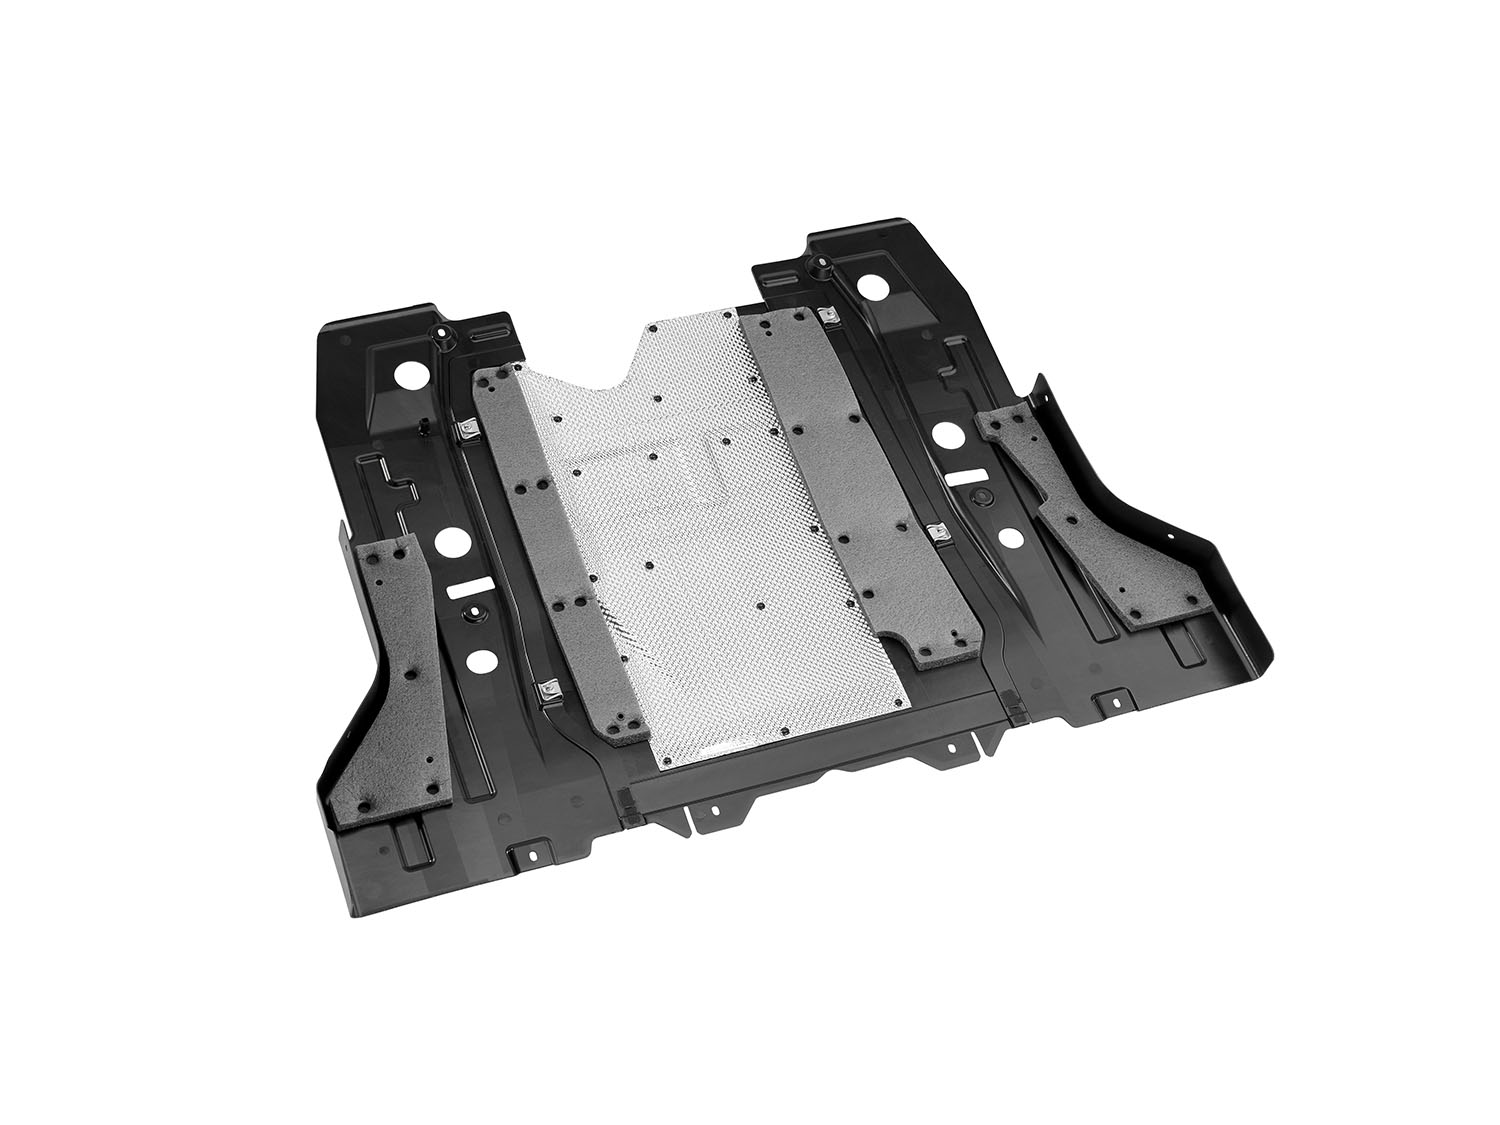 D LFT Engine Shield With Integrated Maintenance Shutter ...